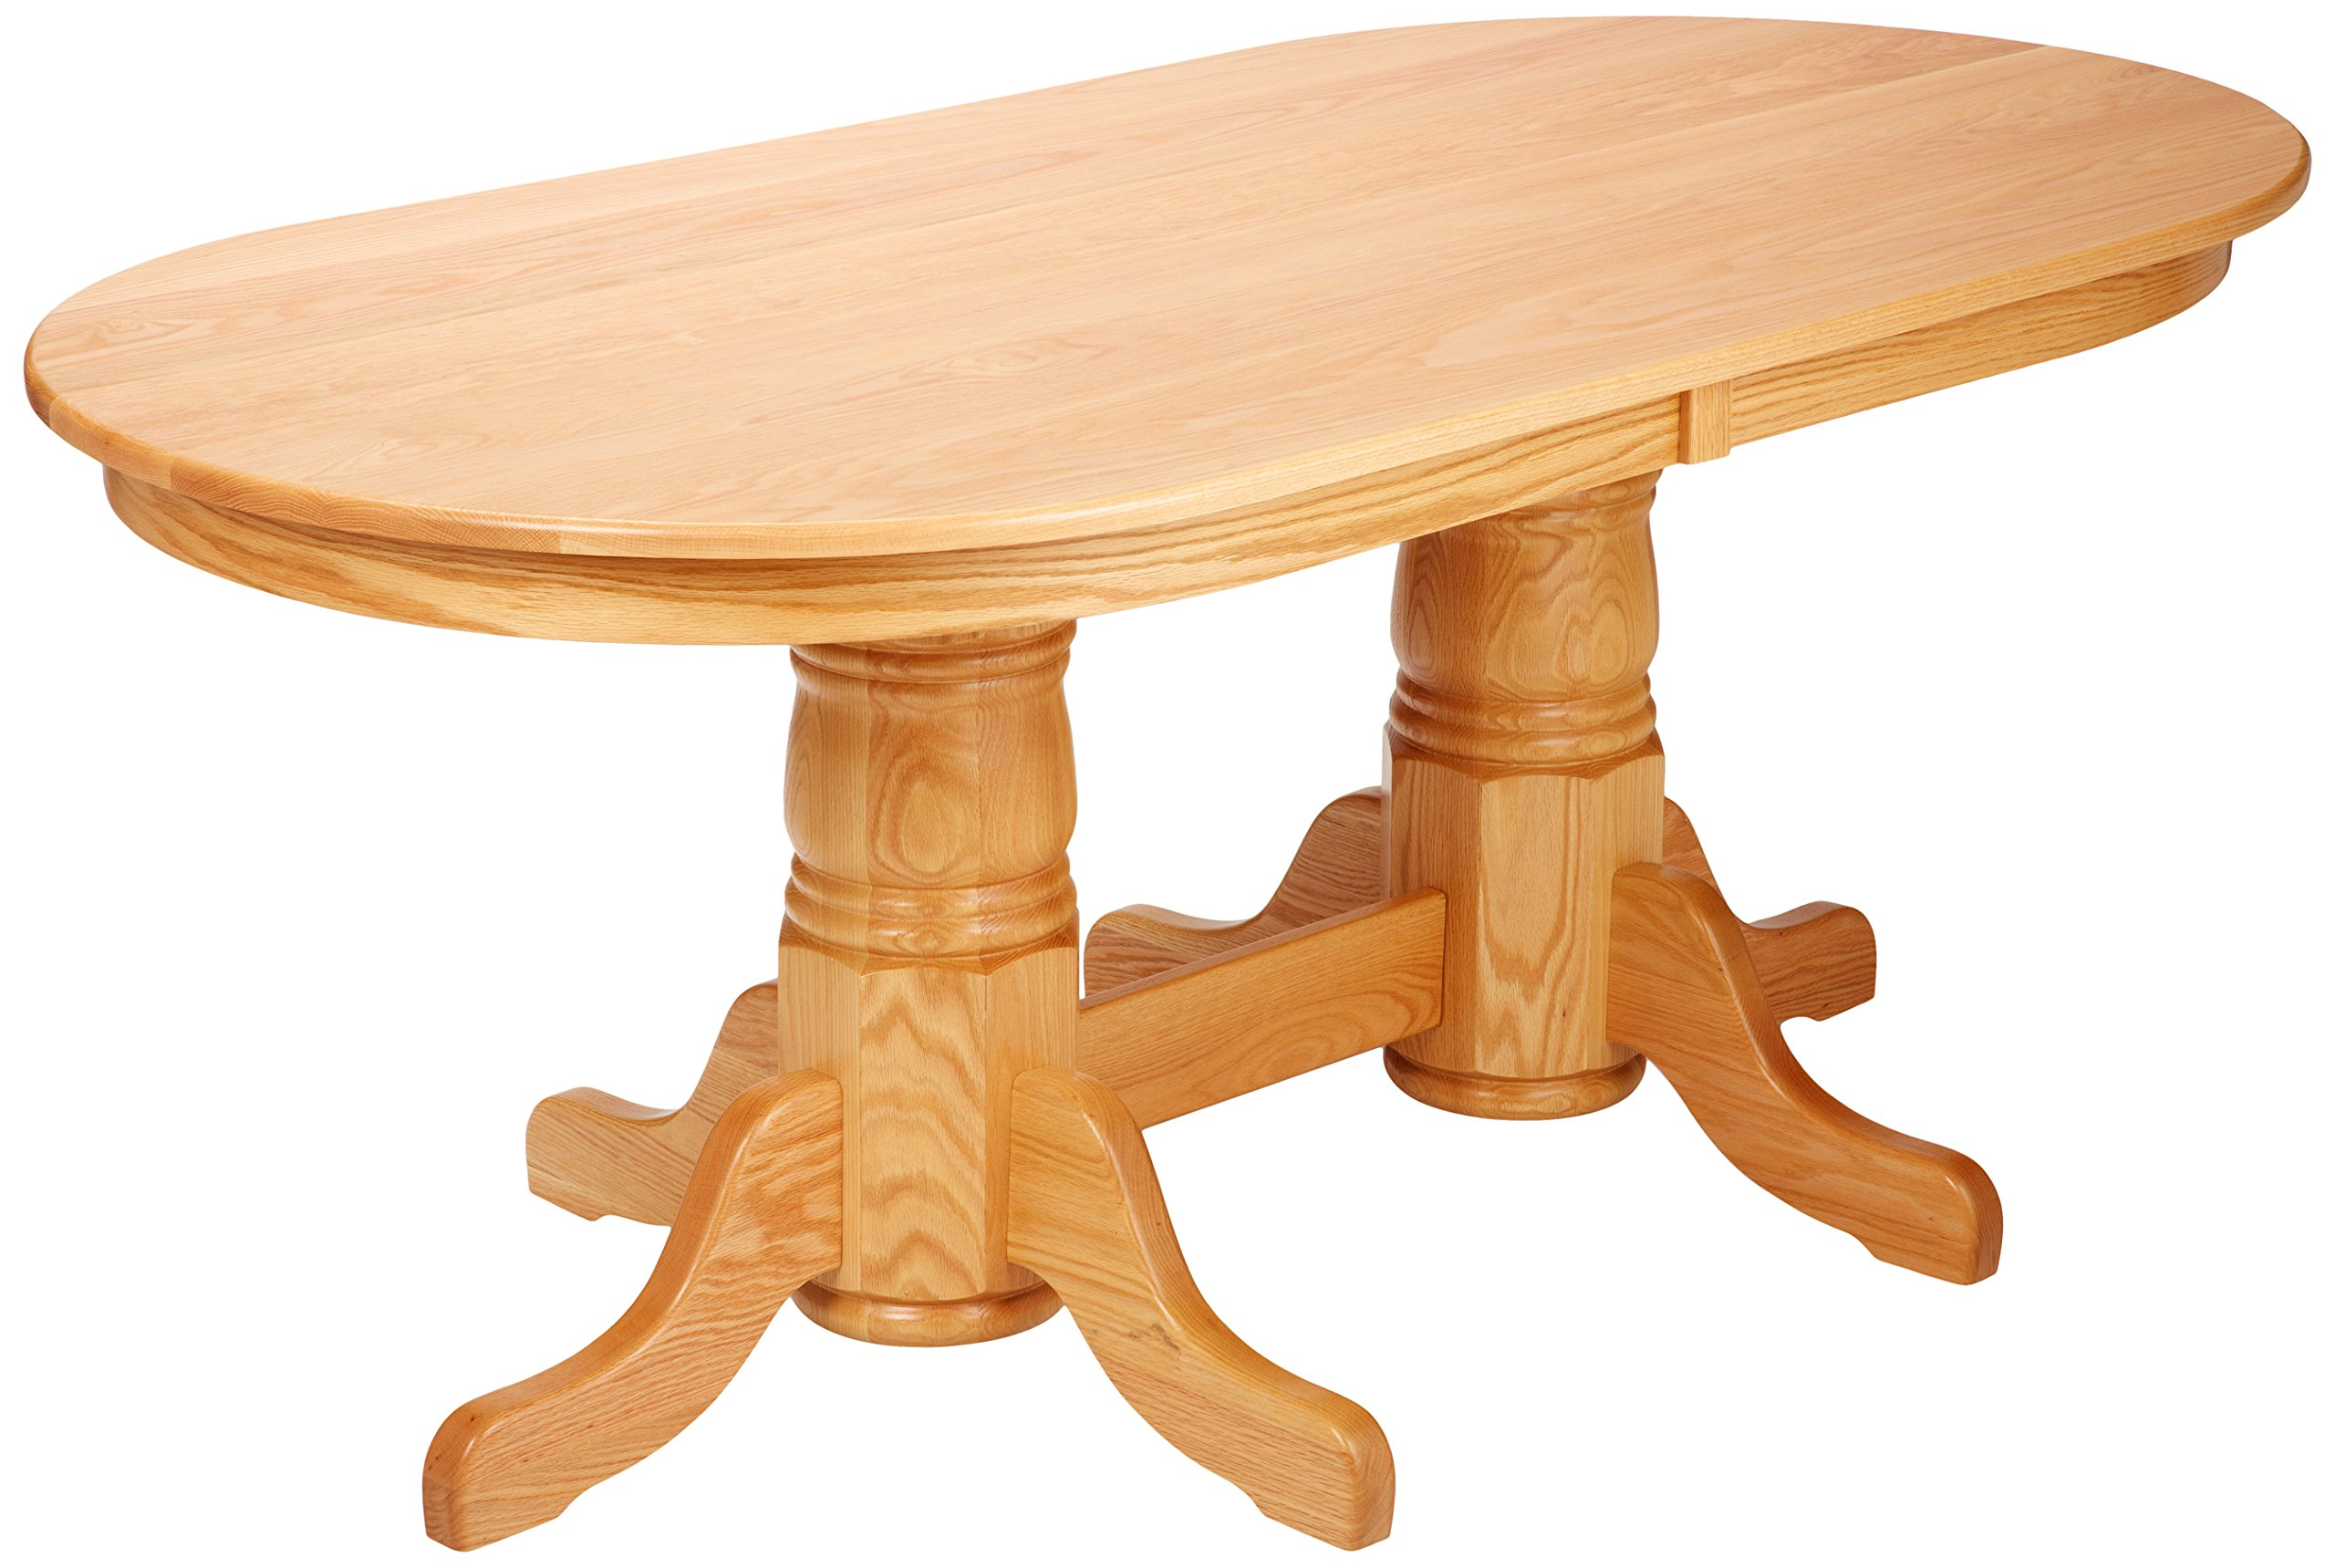 Dooley's EN7236DBD-4 Solid Oak Double Pedestal Oval Dining Table, 72'' Length x 36'' Width x 30'' Height, Natural Finish